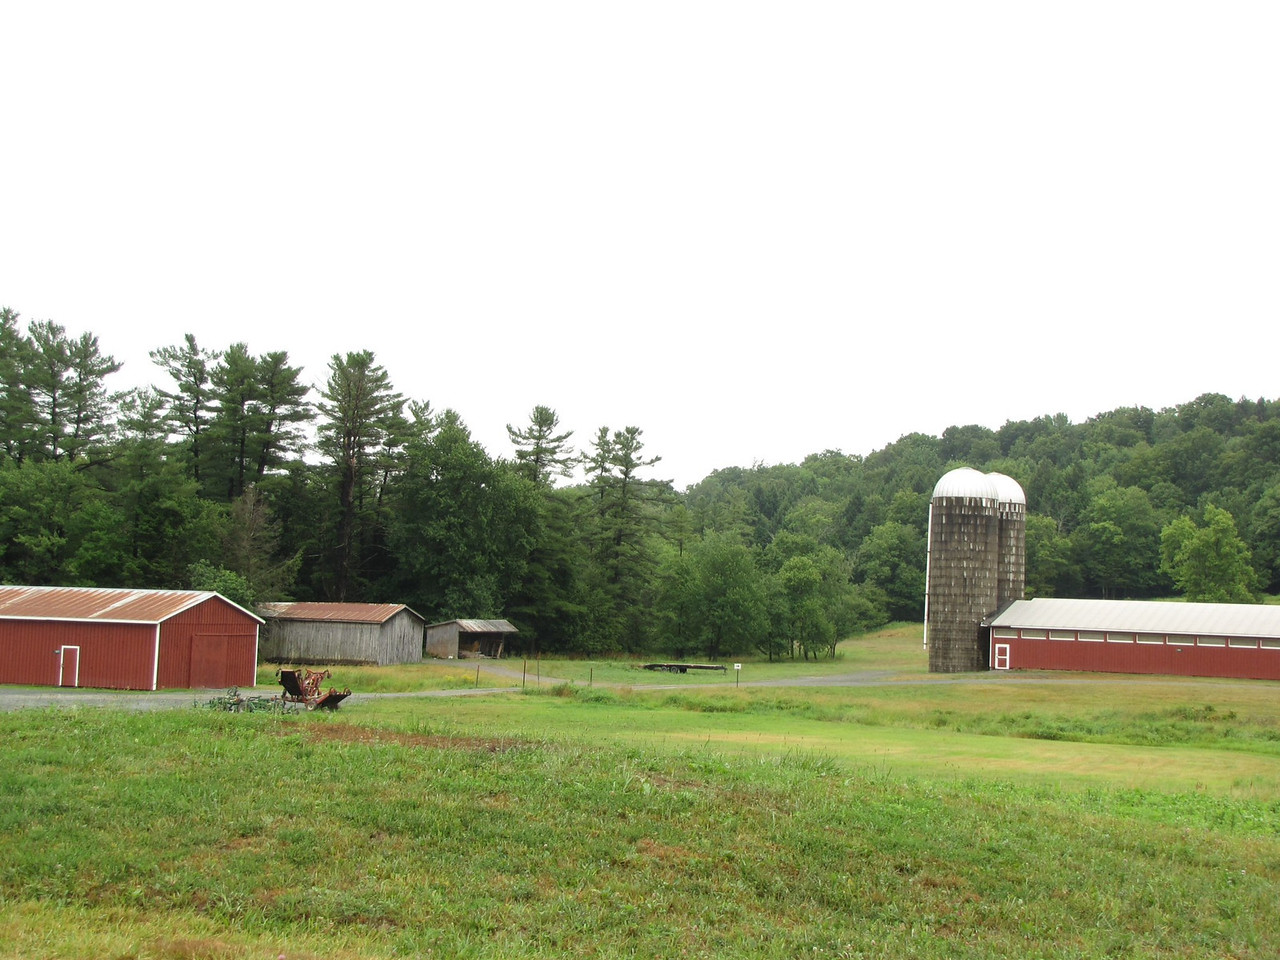 Woodstock/Bethel Woods farm near the base of the hill. This is NOT Yasgur's Farm. On a map this looks like it should be Yasgur's Farm but it's not. This is owned by Bethel Woods and appears to be a functioning dairy farm